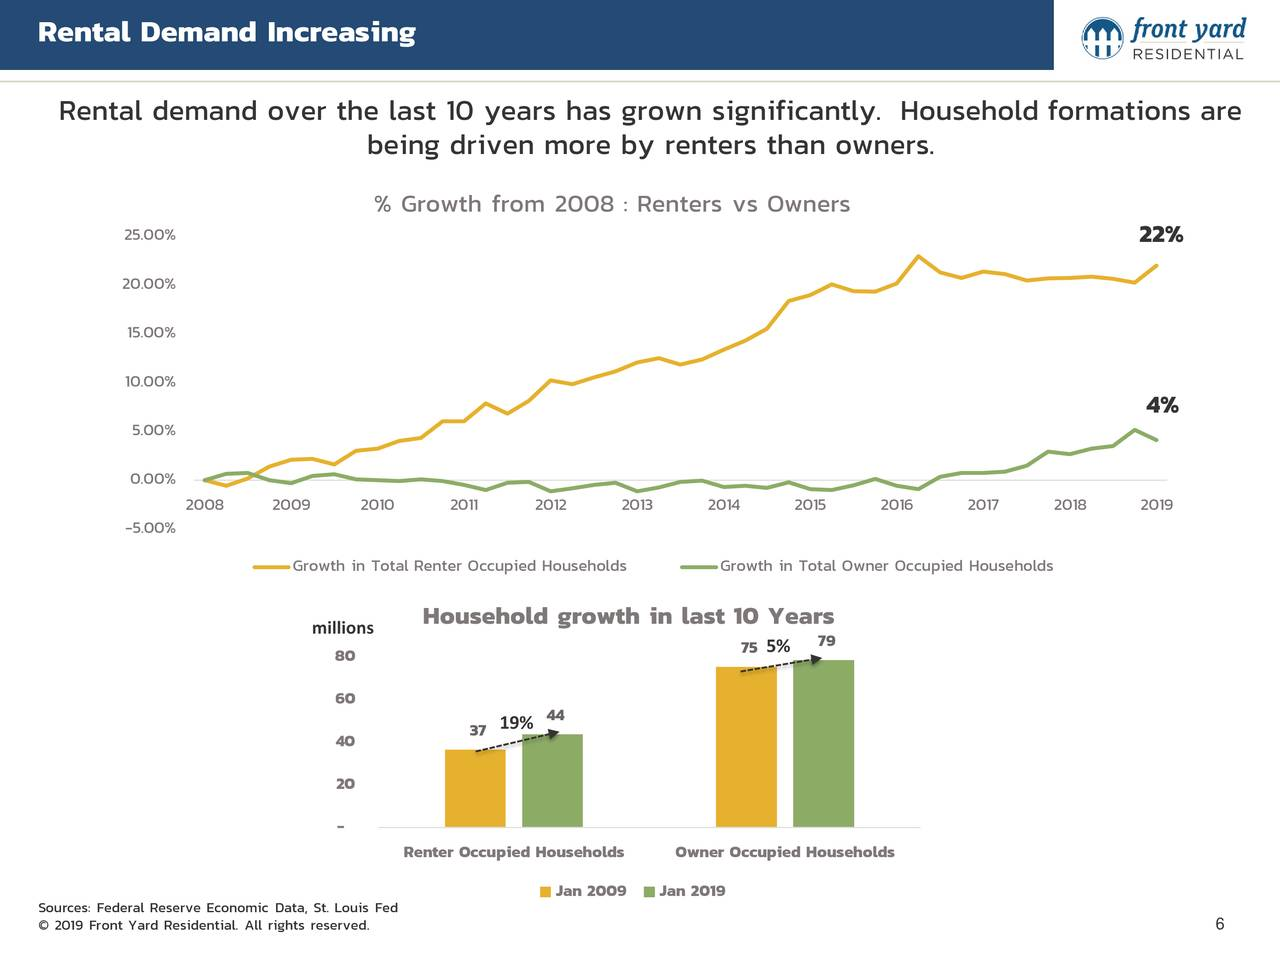 Rental demand over the last 10 years has grown significantly. Household formations are being driven more by renters than owners. % Growth from 2008 : Renters vs Owners 25.00% 22% 20.00% 15.00% 10.00% 4% 5.00% 0.00% 2008 2009 2010 2011 2012 2013 2014 2015 2016 2017 2018 2019 -5.00% Growth in Total Renter Occupied Households Growth in Total Owner Occupied Households Household growth in last 10 Years millions 79 80 75 5% 60 37 19% 44 40 20 - Renter Occupied Households Owner Occupied Households Jan 2009 Jan 2019 Sources: Federal Reserve Economic Data, St. Louis Fed © 2019 Front Yard Residential. All rights reserved. 6